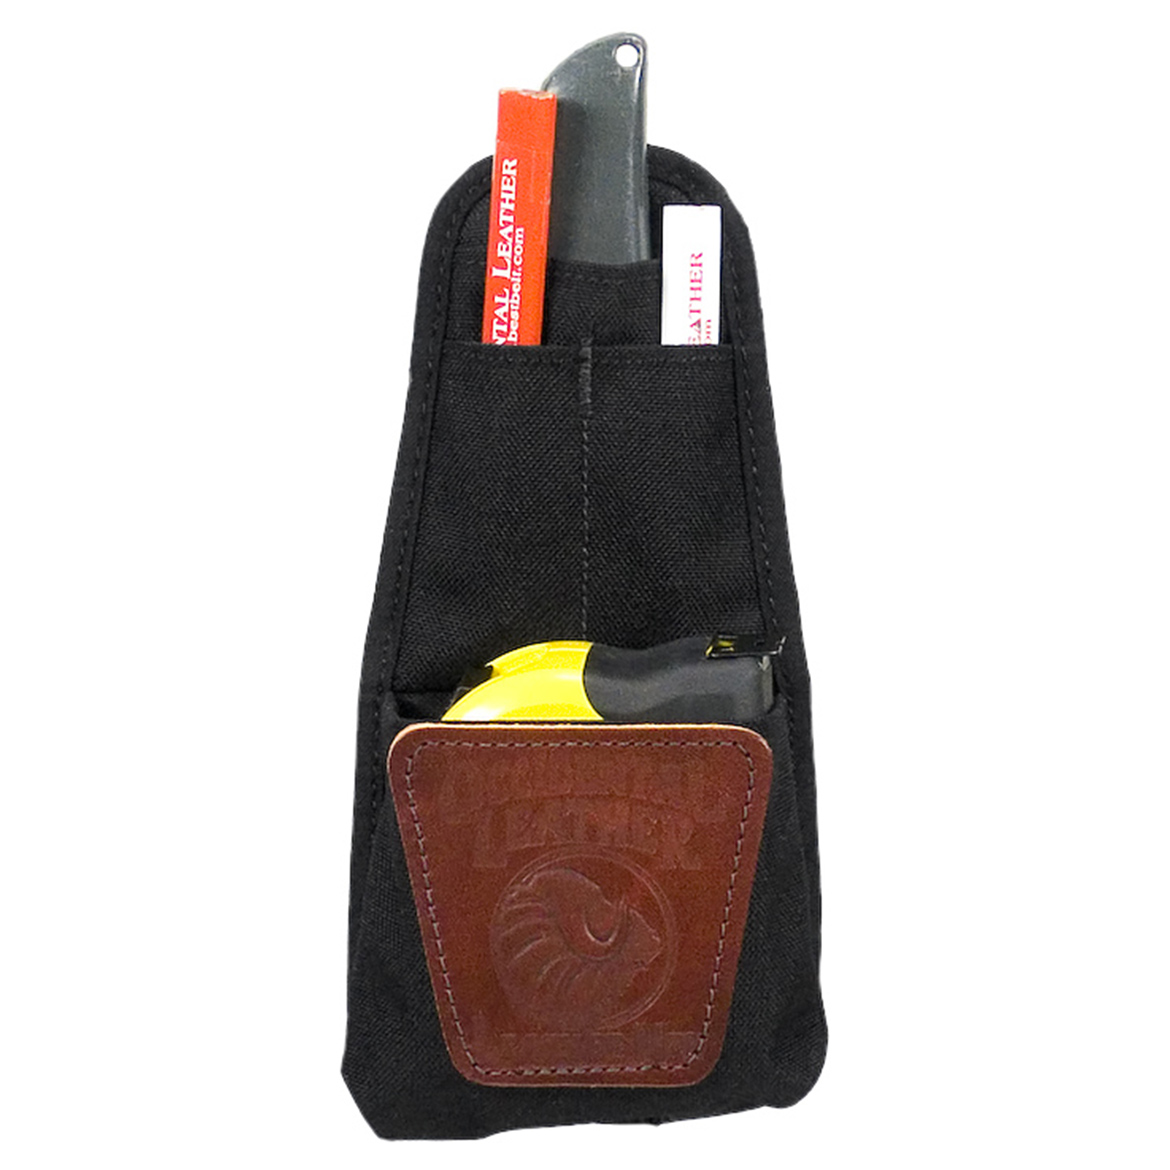 394c54c72d7 Details about Occidental Leather 8505 Clip-On 4 Pocket Tool Holder Organizer